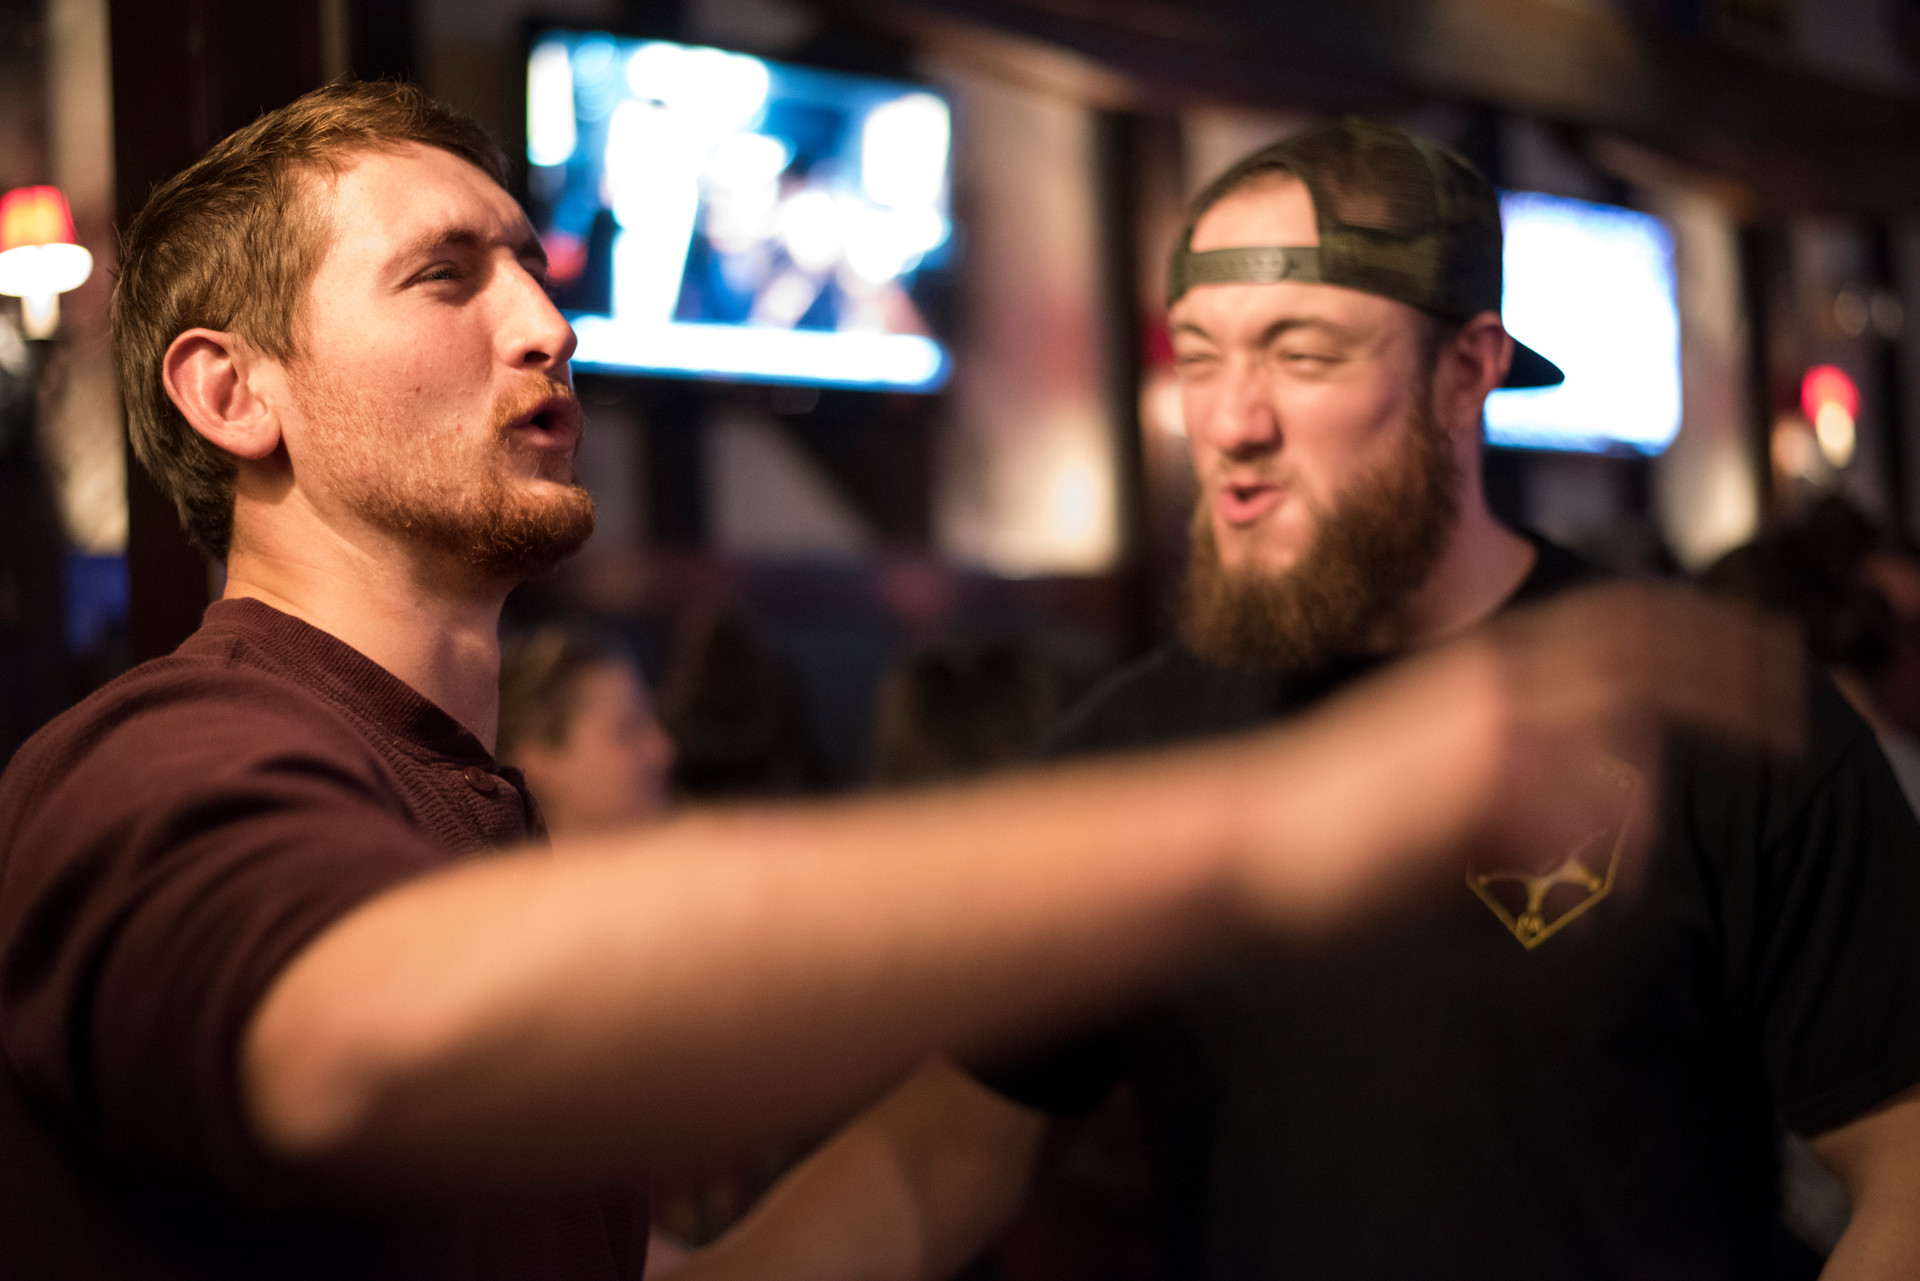 Troyer and his friend, Paul Kemper, sing along to the music at Pickles' country night. Troyer attended country night every Tuesday with his friends.